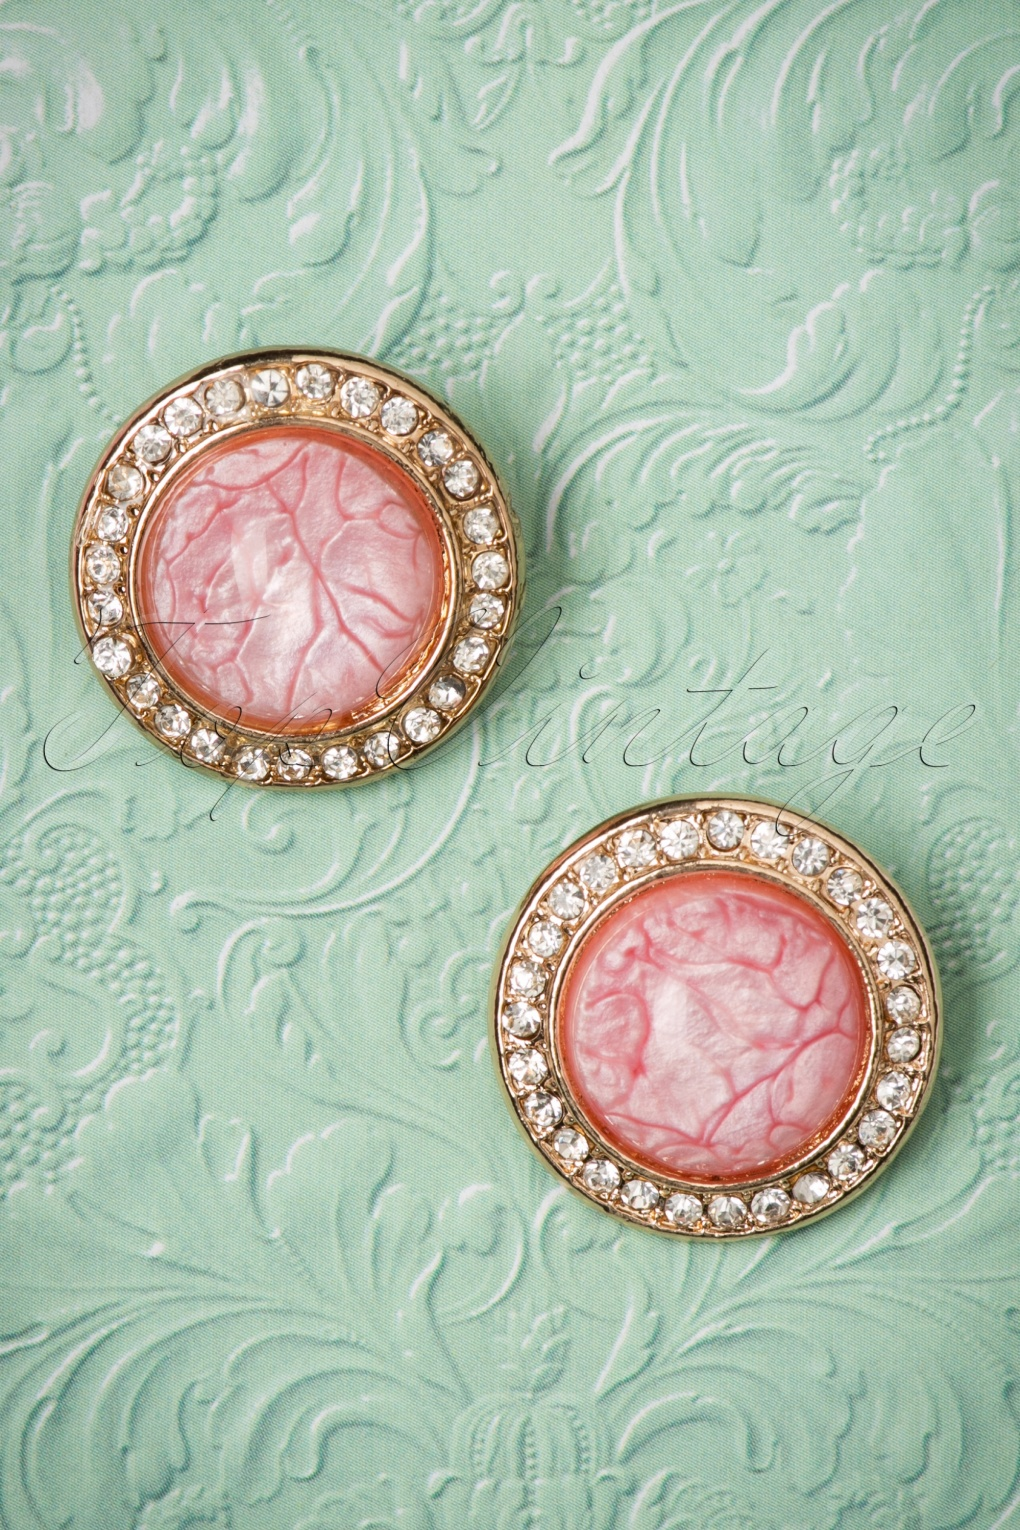 1950s Costume Jewelry 50s Pretty in Pink Round Shaped Diamond Studs £11.00 AT vintagedancer.com